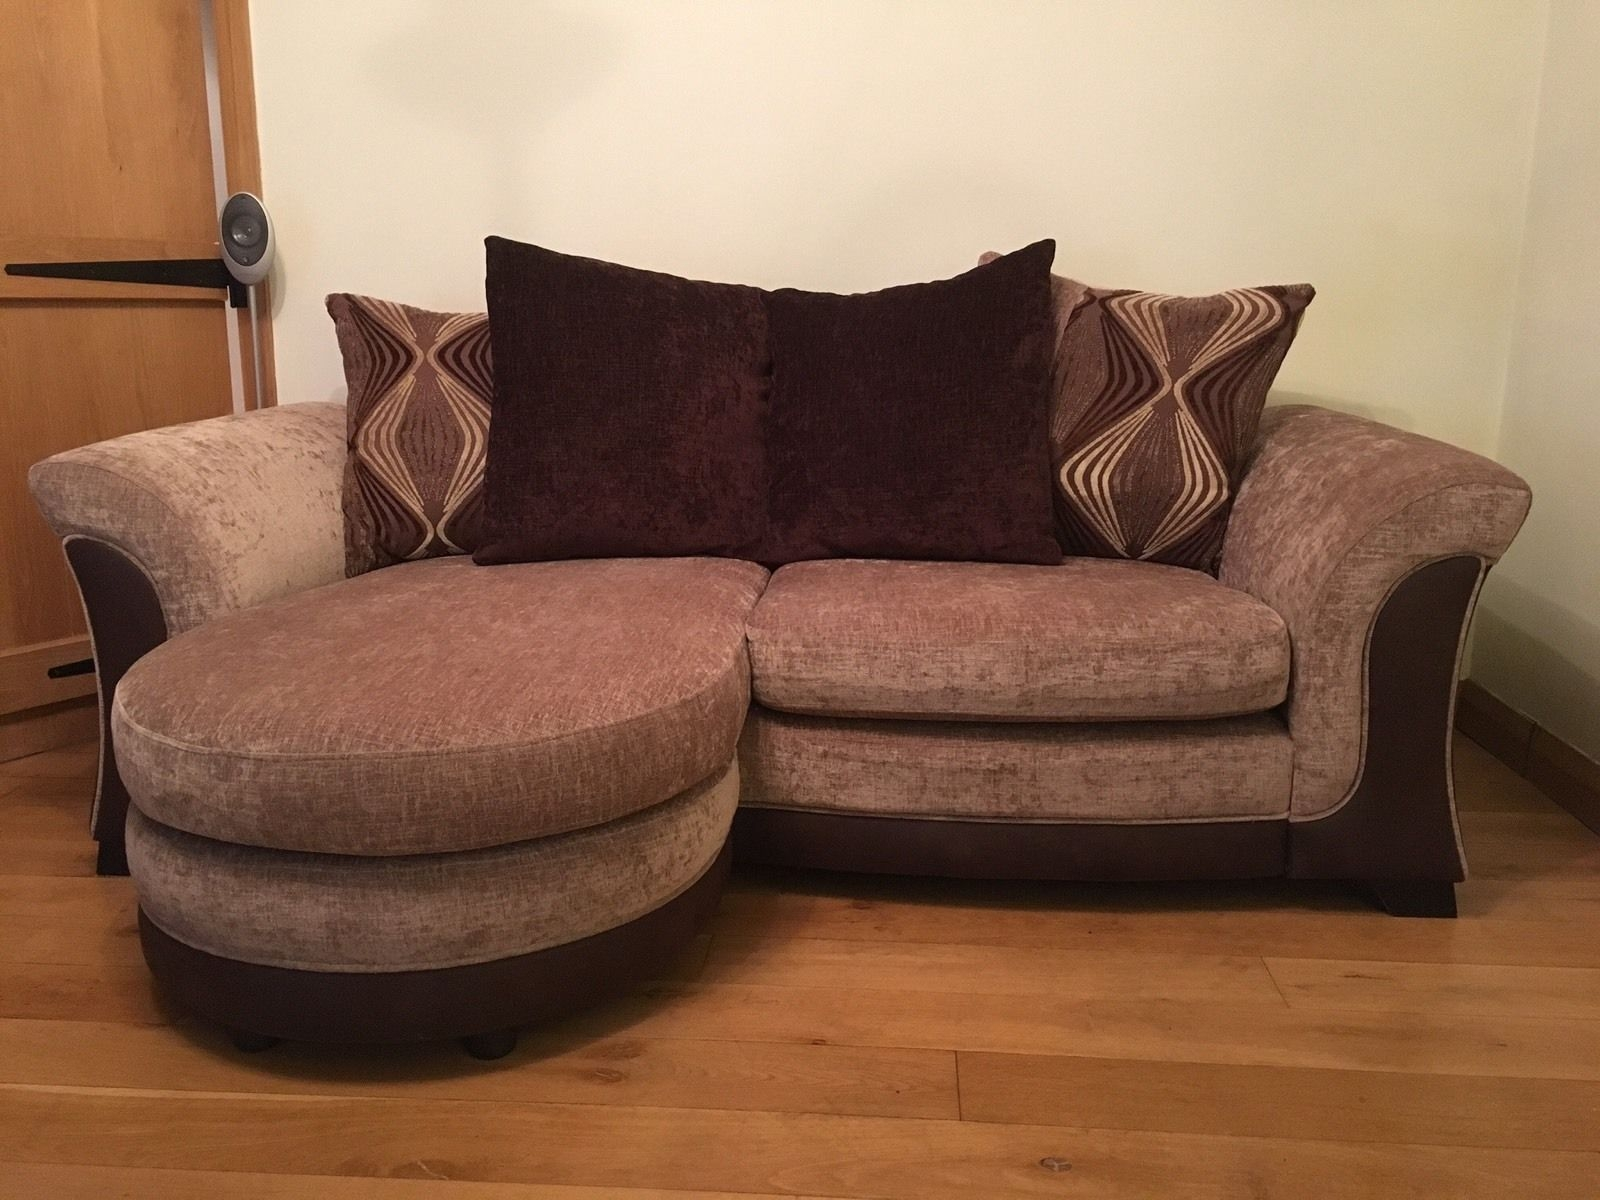 56 Swivel Sofa Chair Seater Sofa And Swivel Chair Dfs In Cardiff With Regard To Sofa With Swivel Chair (View 13 of 15)